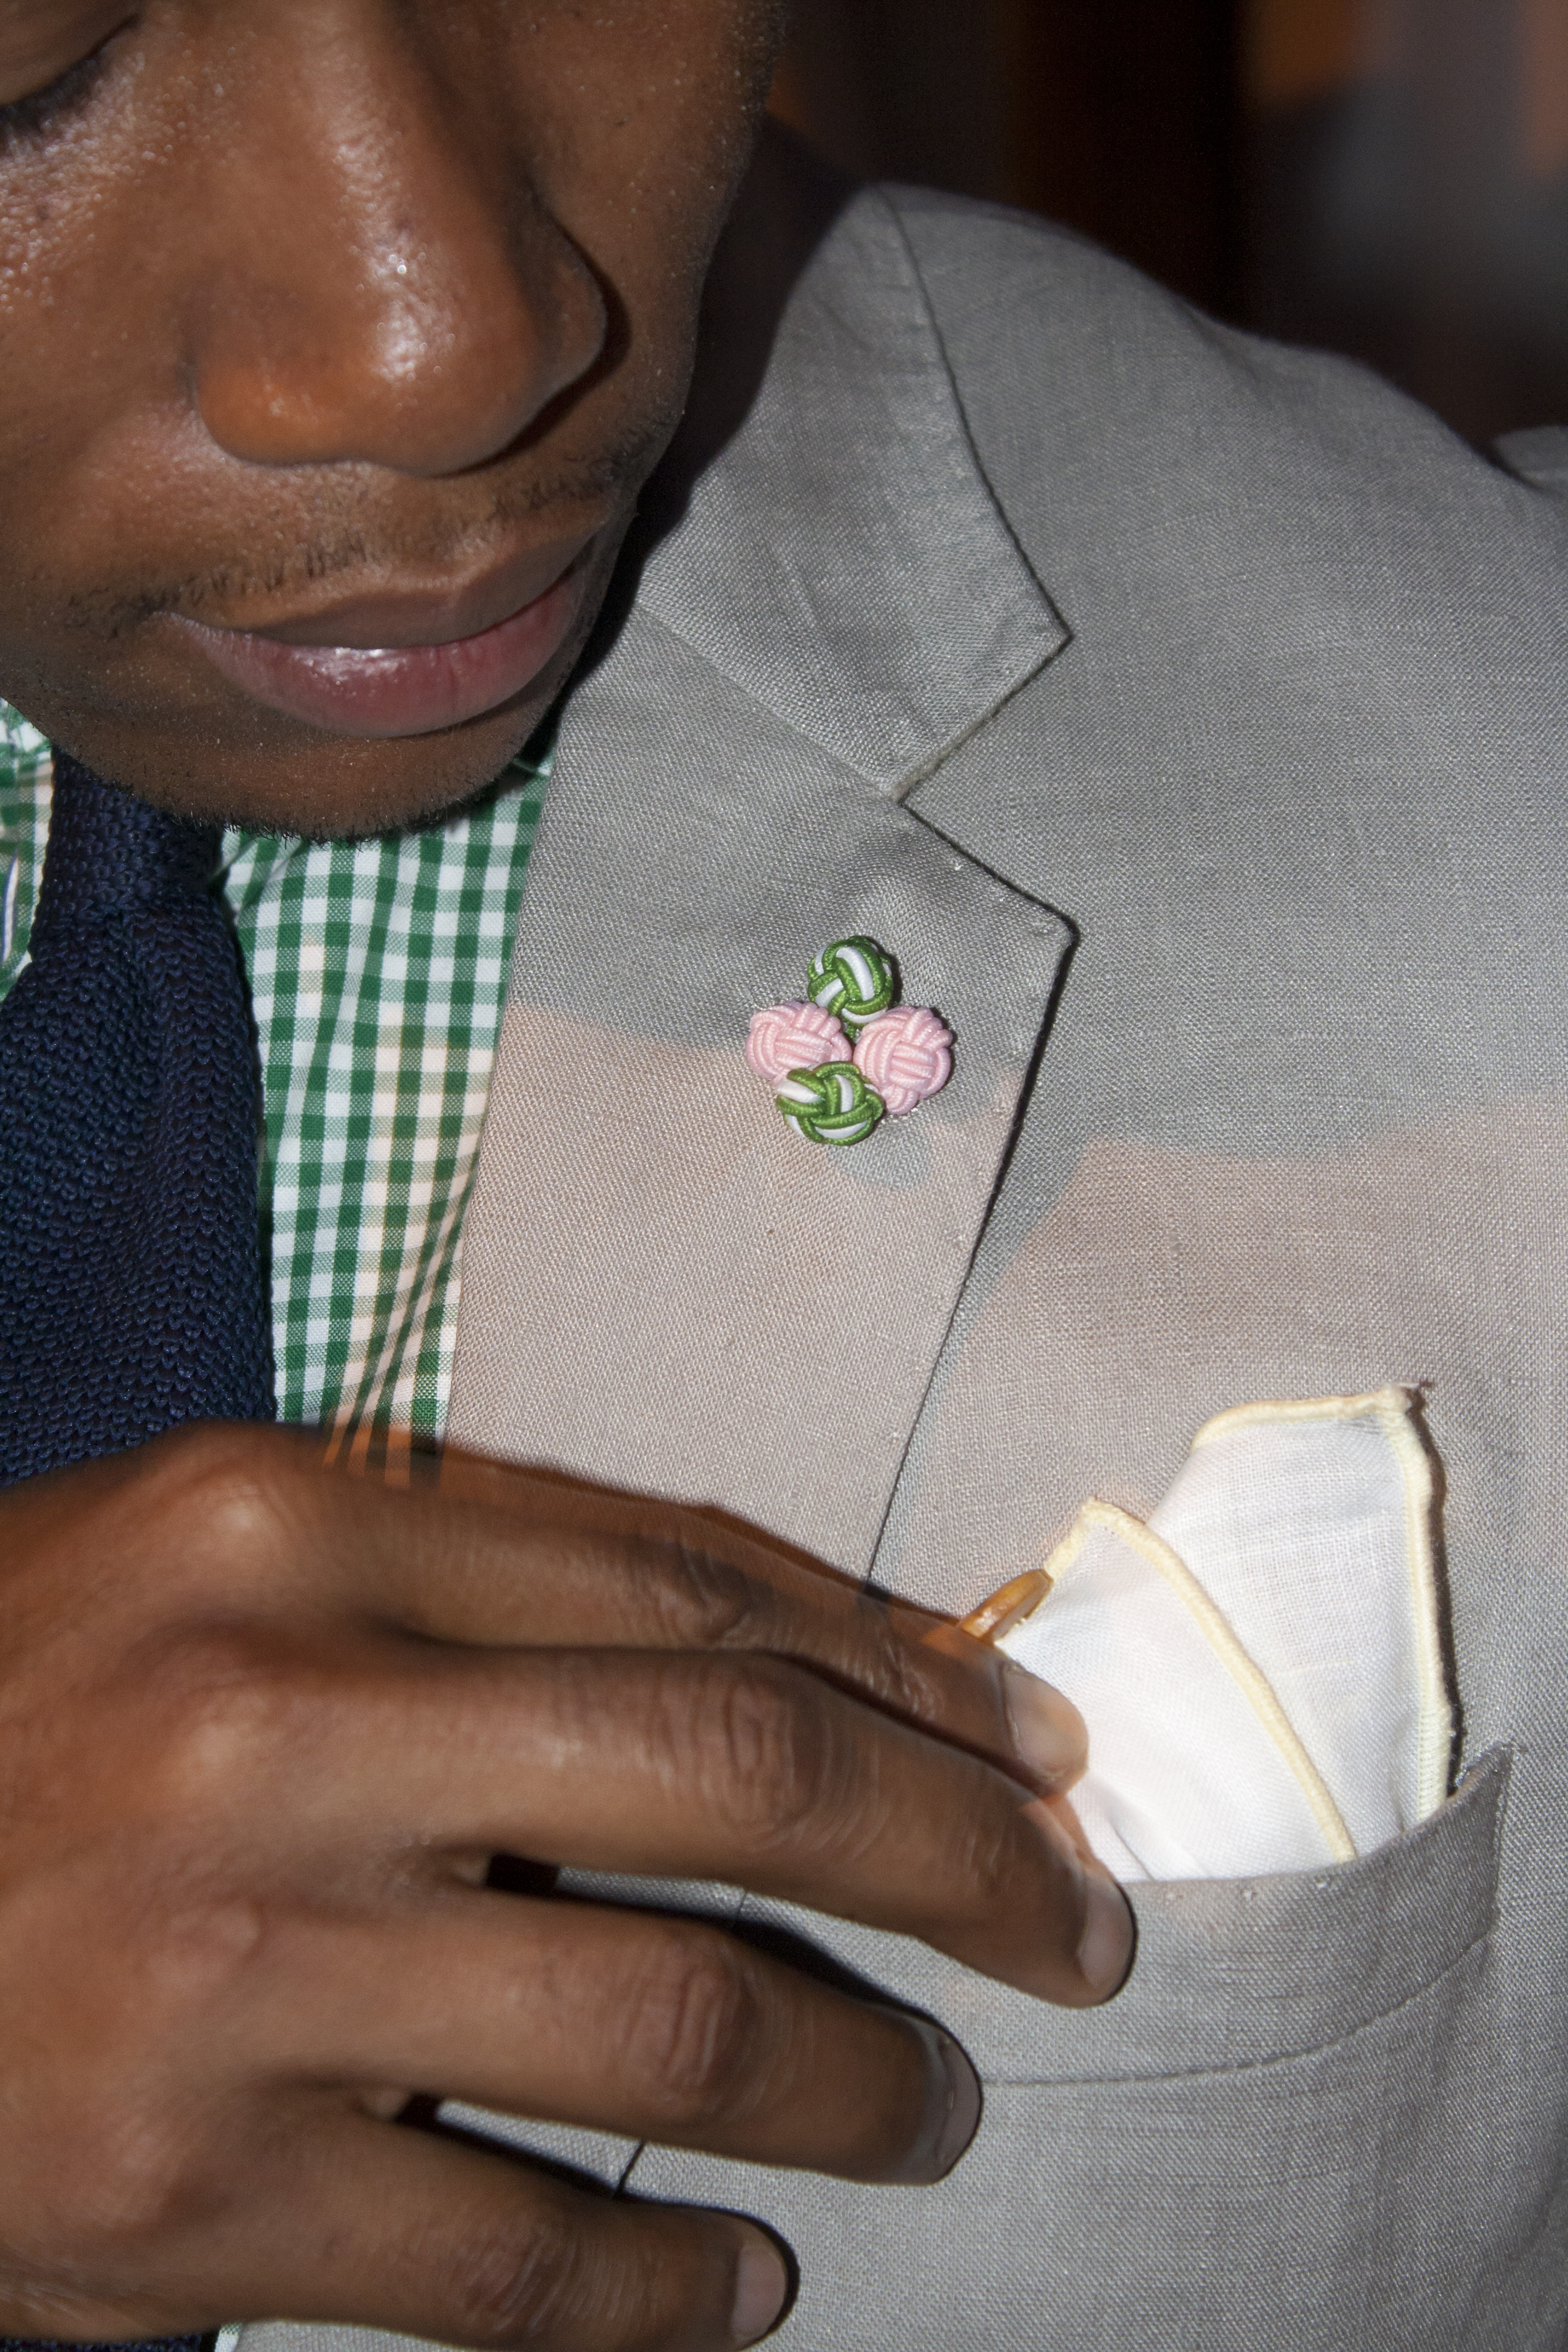 How To Video: Making Silk Knot Lapel Flower